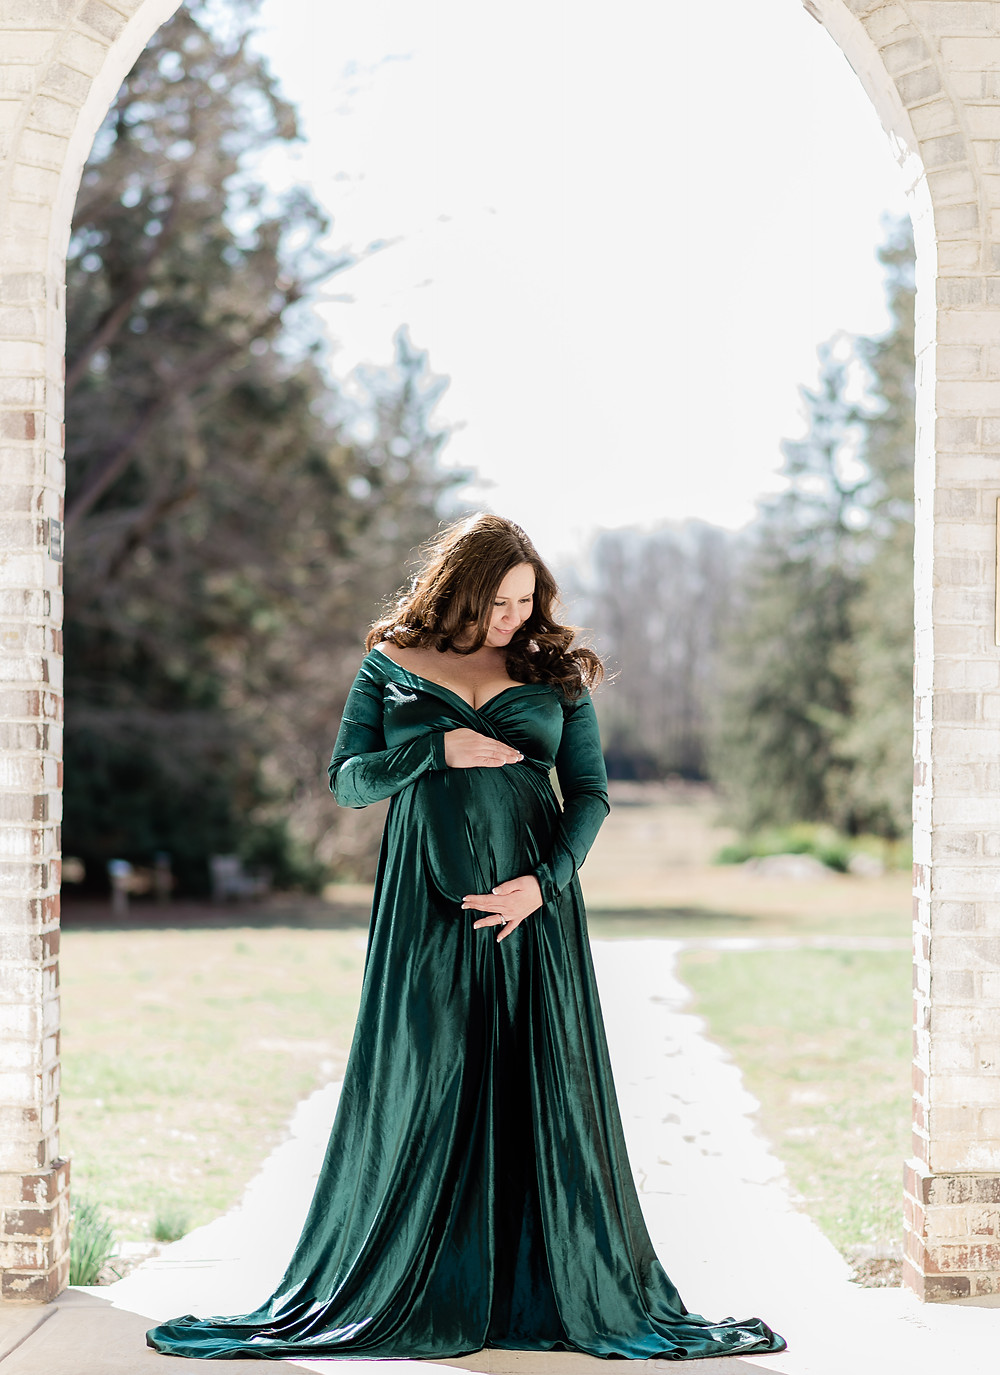 maternity photo under an archway